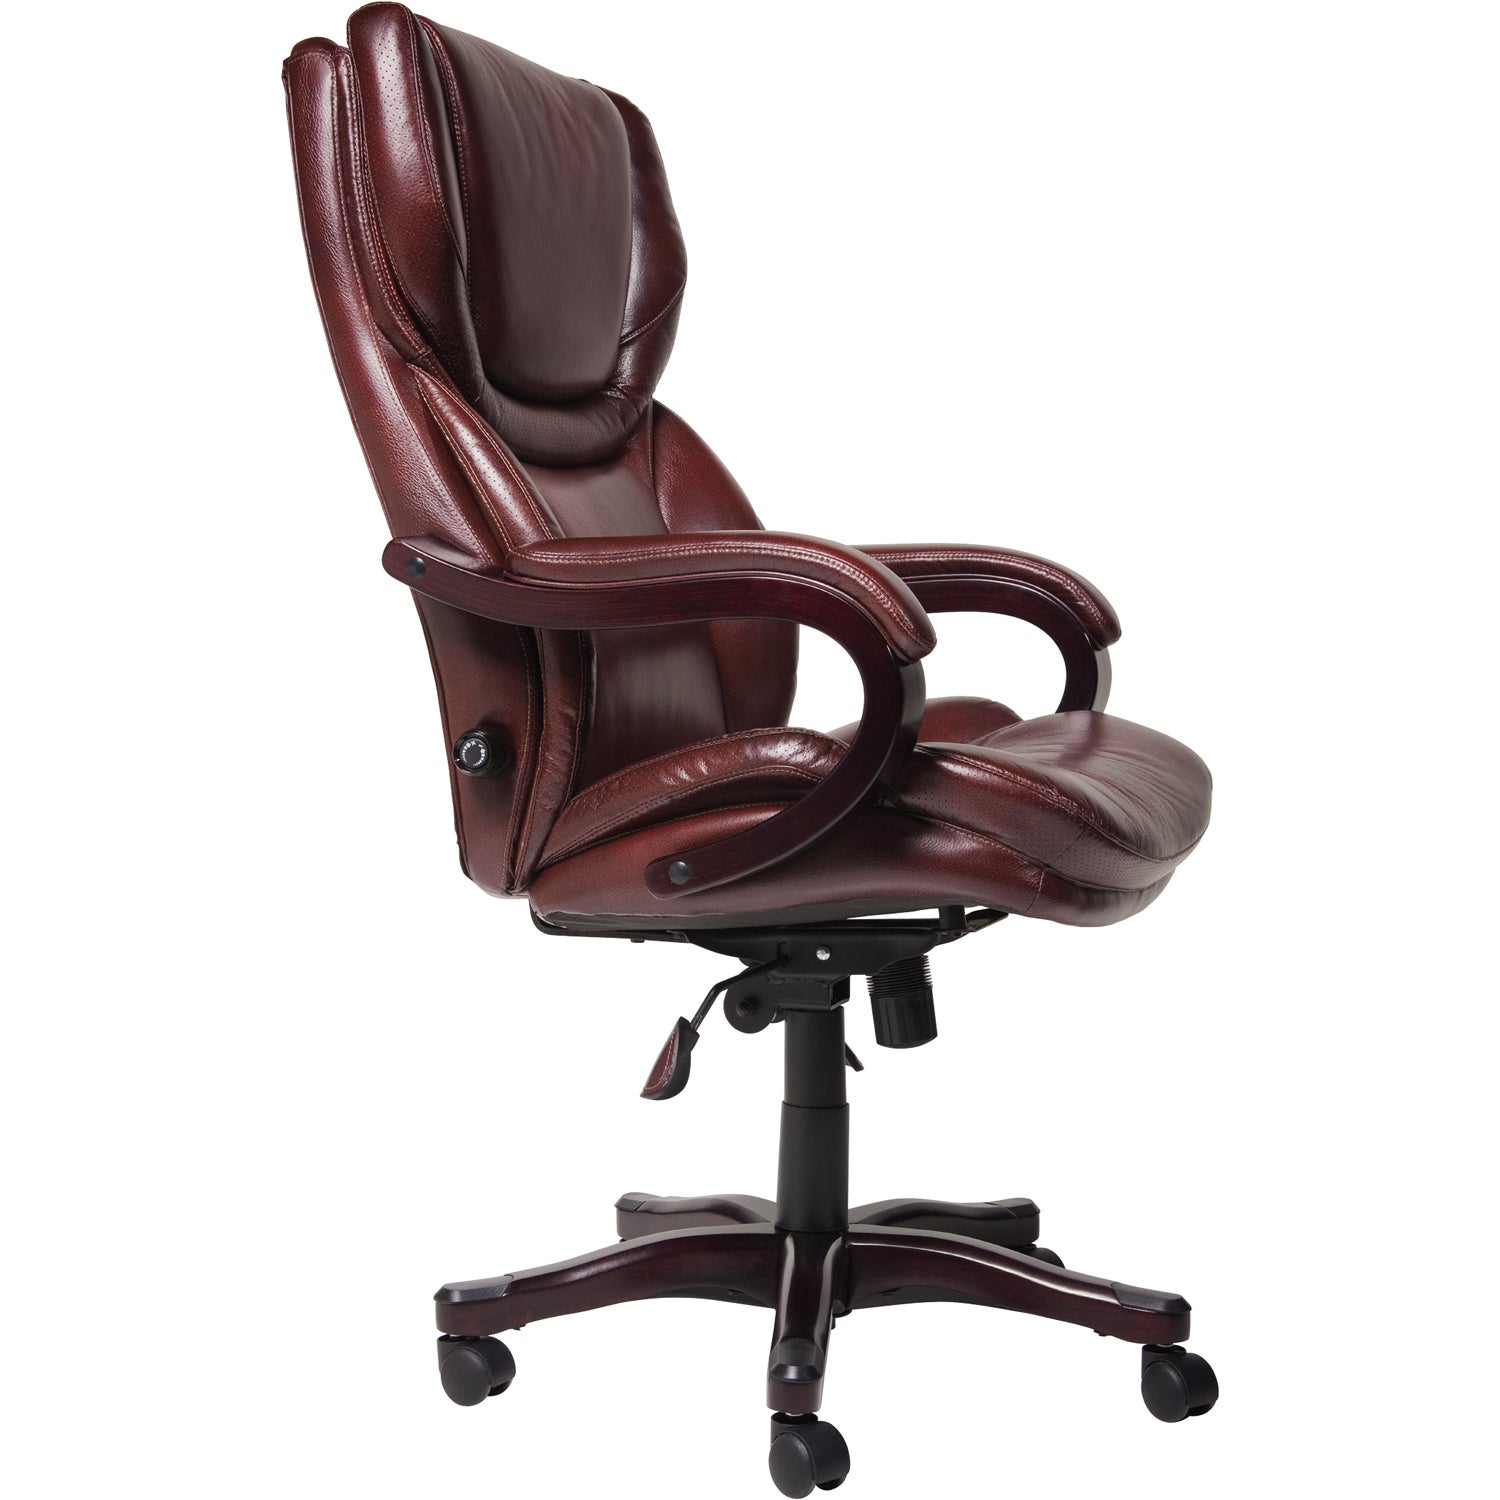 Serta Executive Brown Bonded Leather And Tall Office Chair Free Shipping Today 8861913